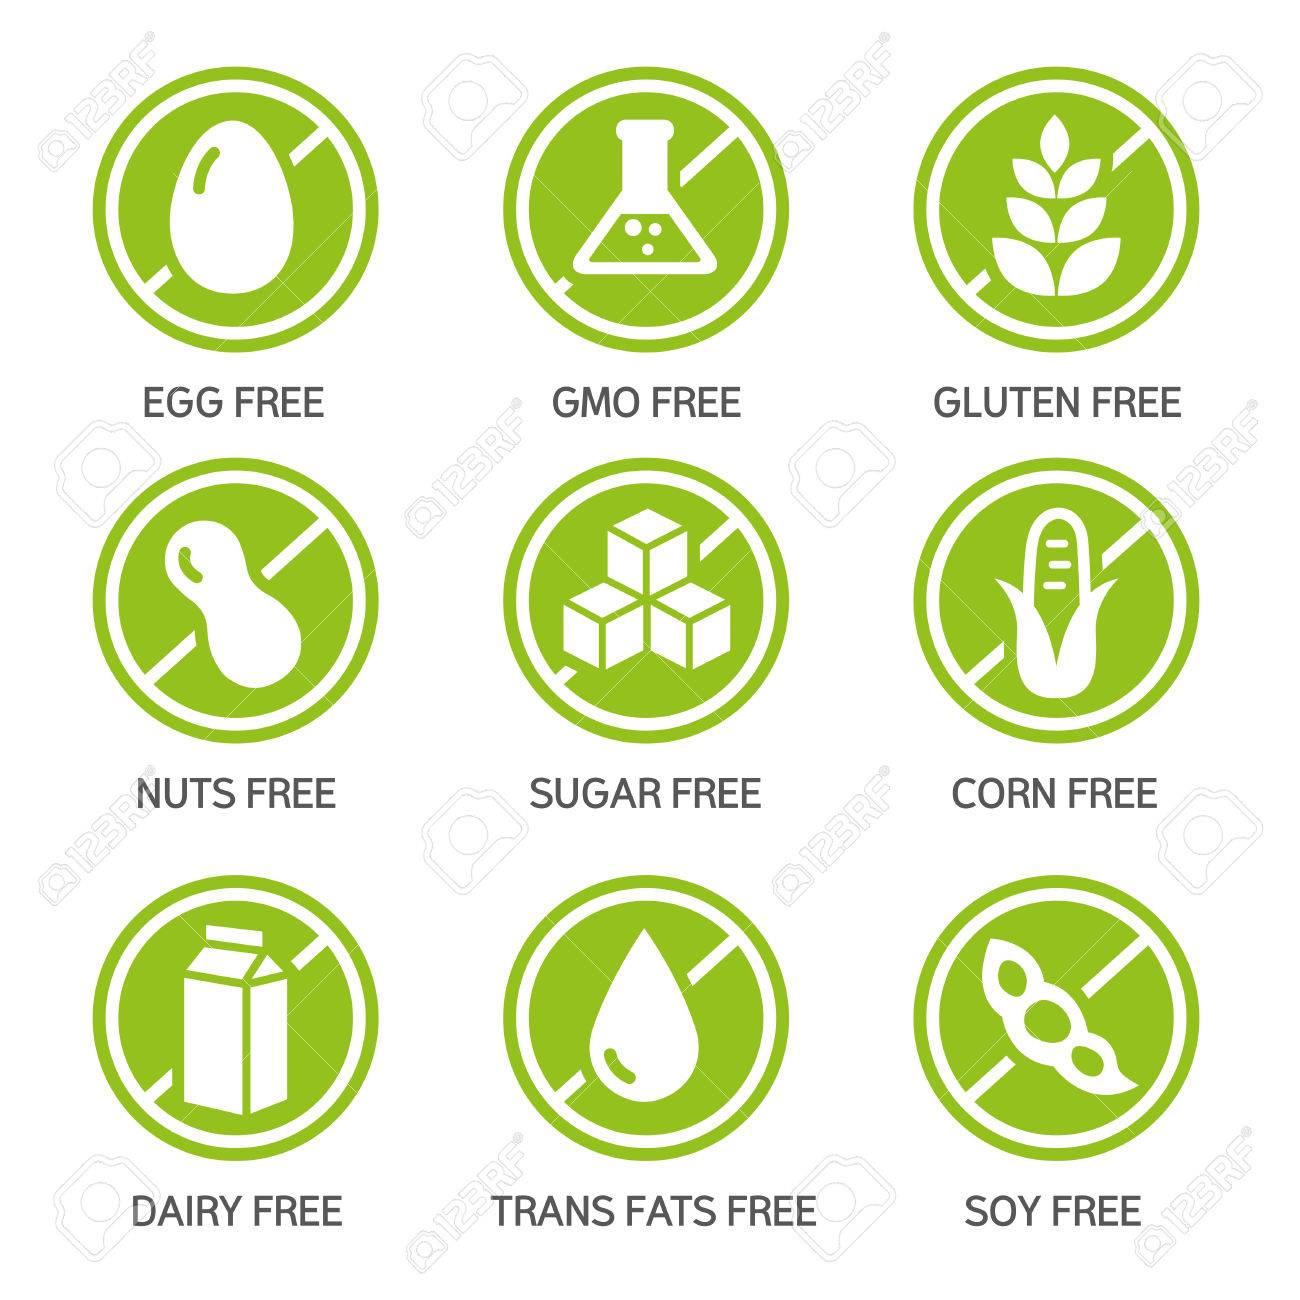 Set of food labels - allergens, GMO free products. - 79529213